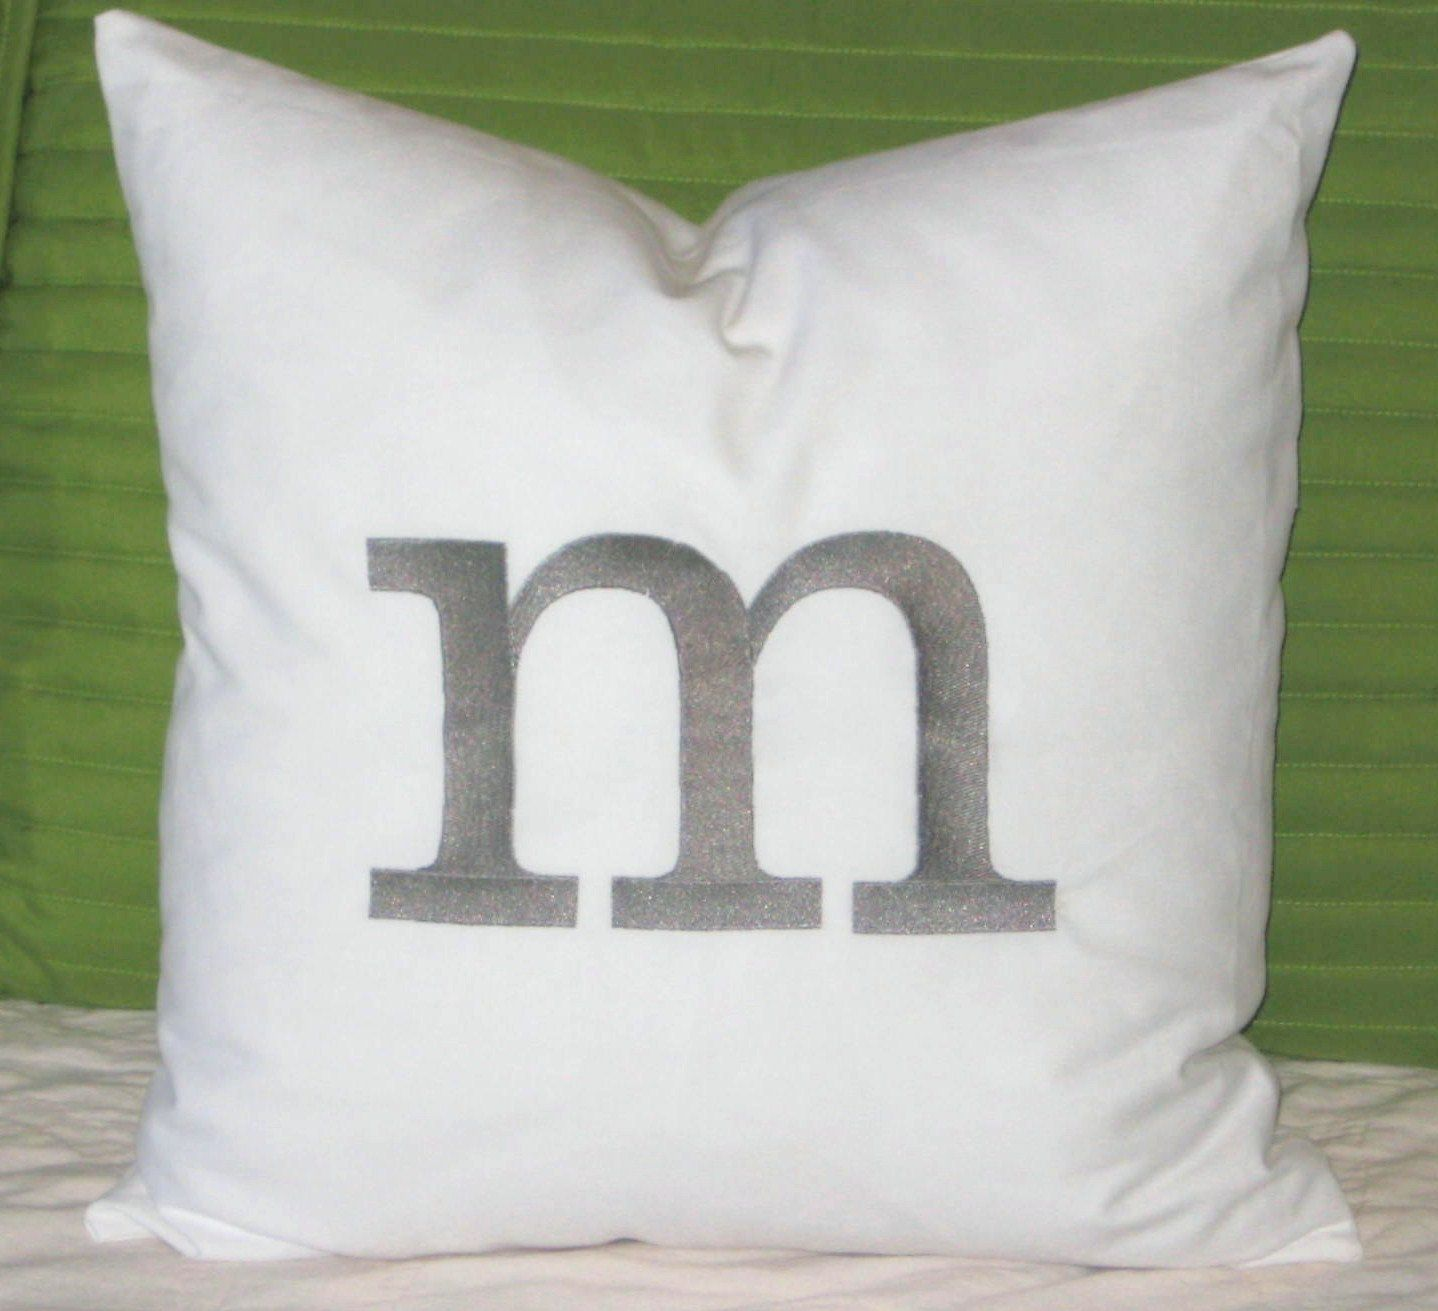 "Initial Pillow Covers Personalized Initial Pillow Cover 18"" X 18"" White Cotton Fabric With"